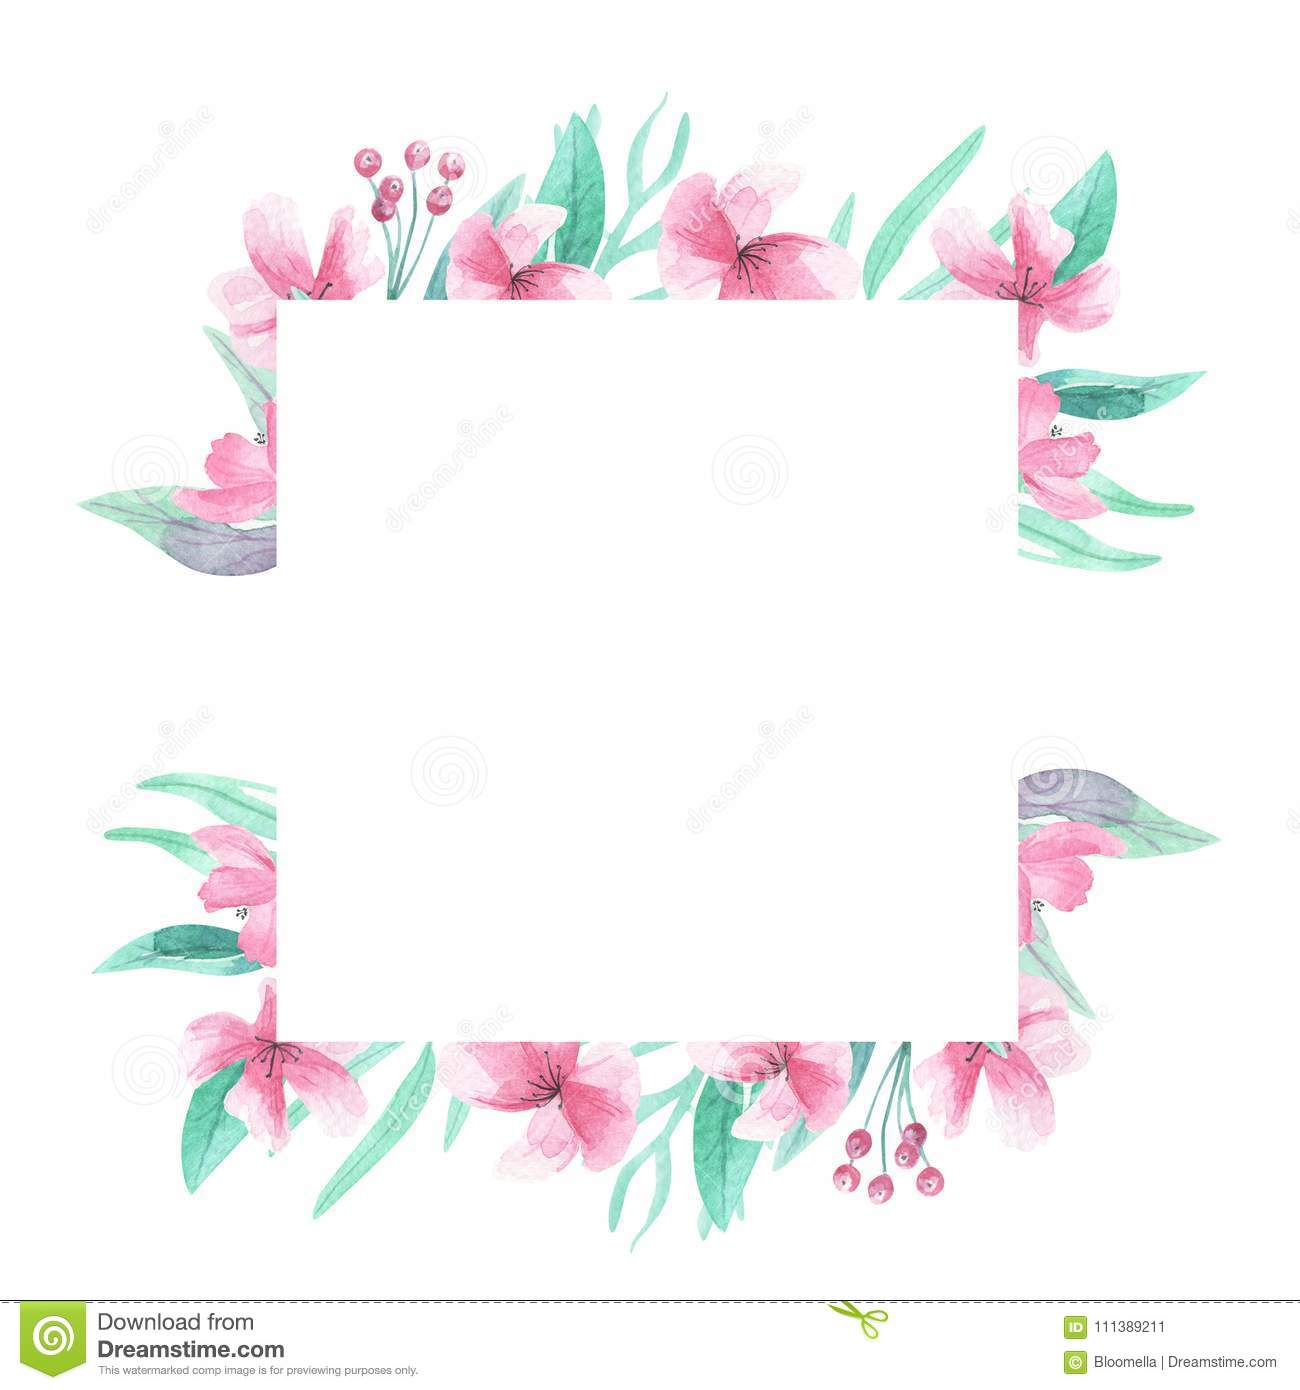 pink flowers square frame watercolor aqua green arch floral border